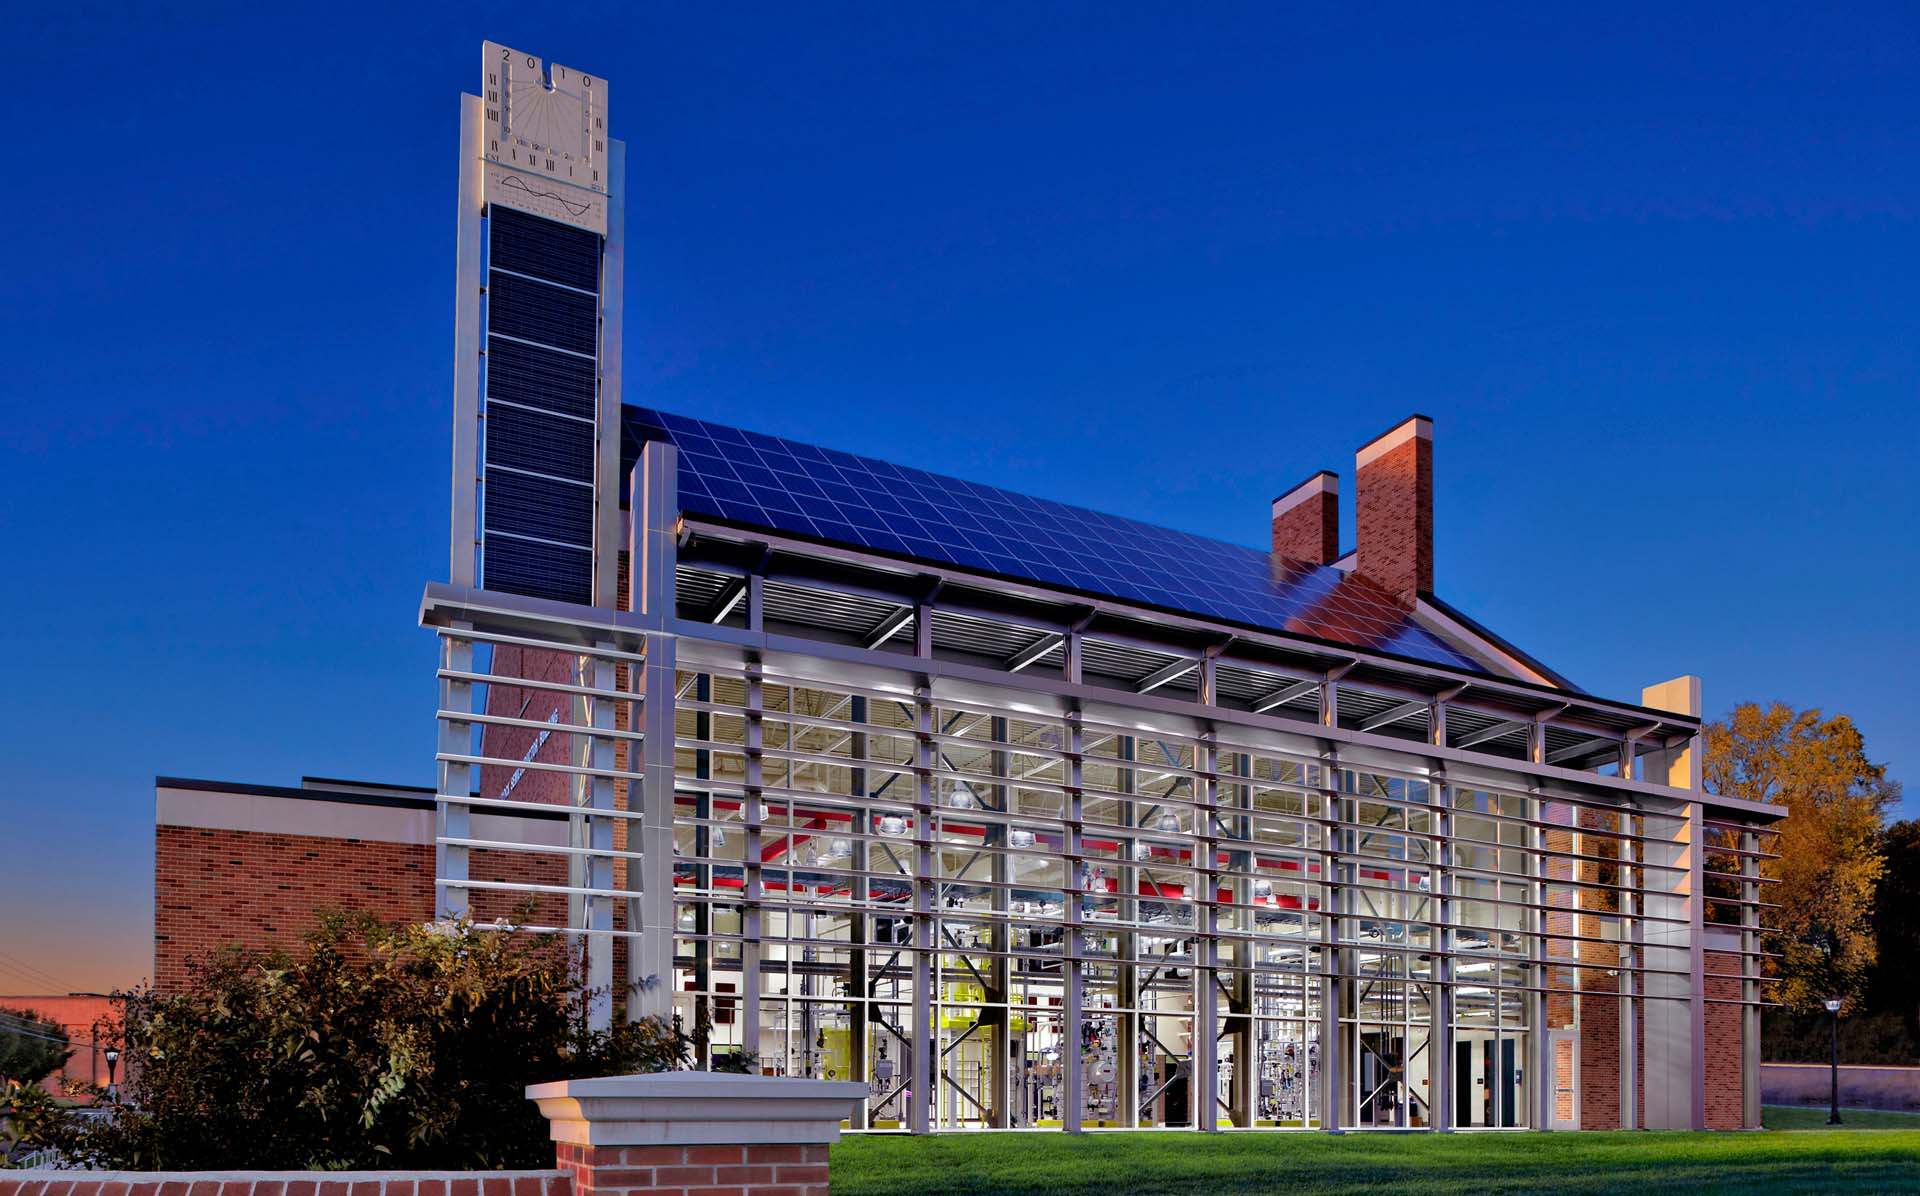 Chemical Engineering Technical Building, CET Building, APSU, Austin Peay State University, Clarksville, Tennessee, new construction, exterior,